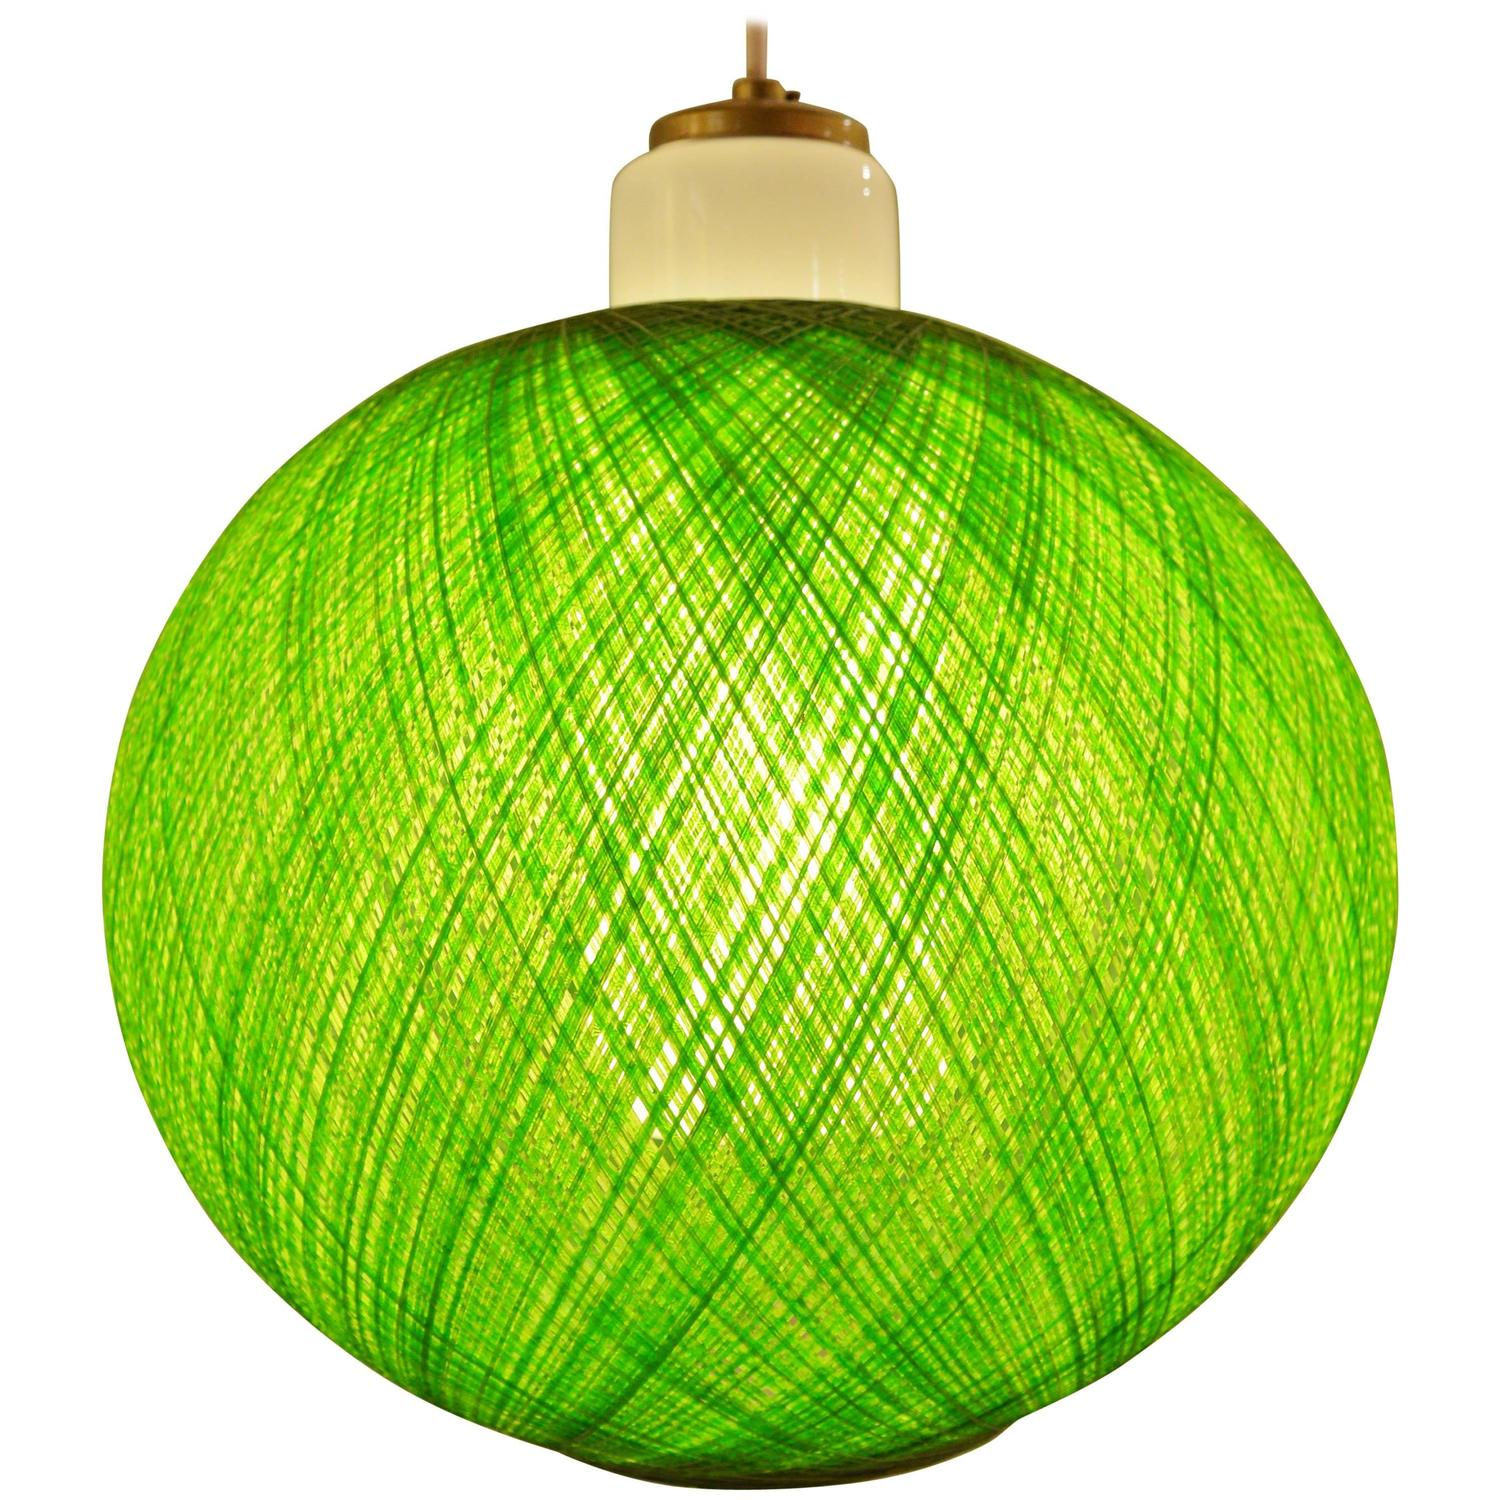 Hot green mcm spun fiberglass and milk glass pendant light at 1stdibs aloadofball Choice Image